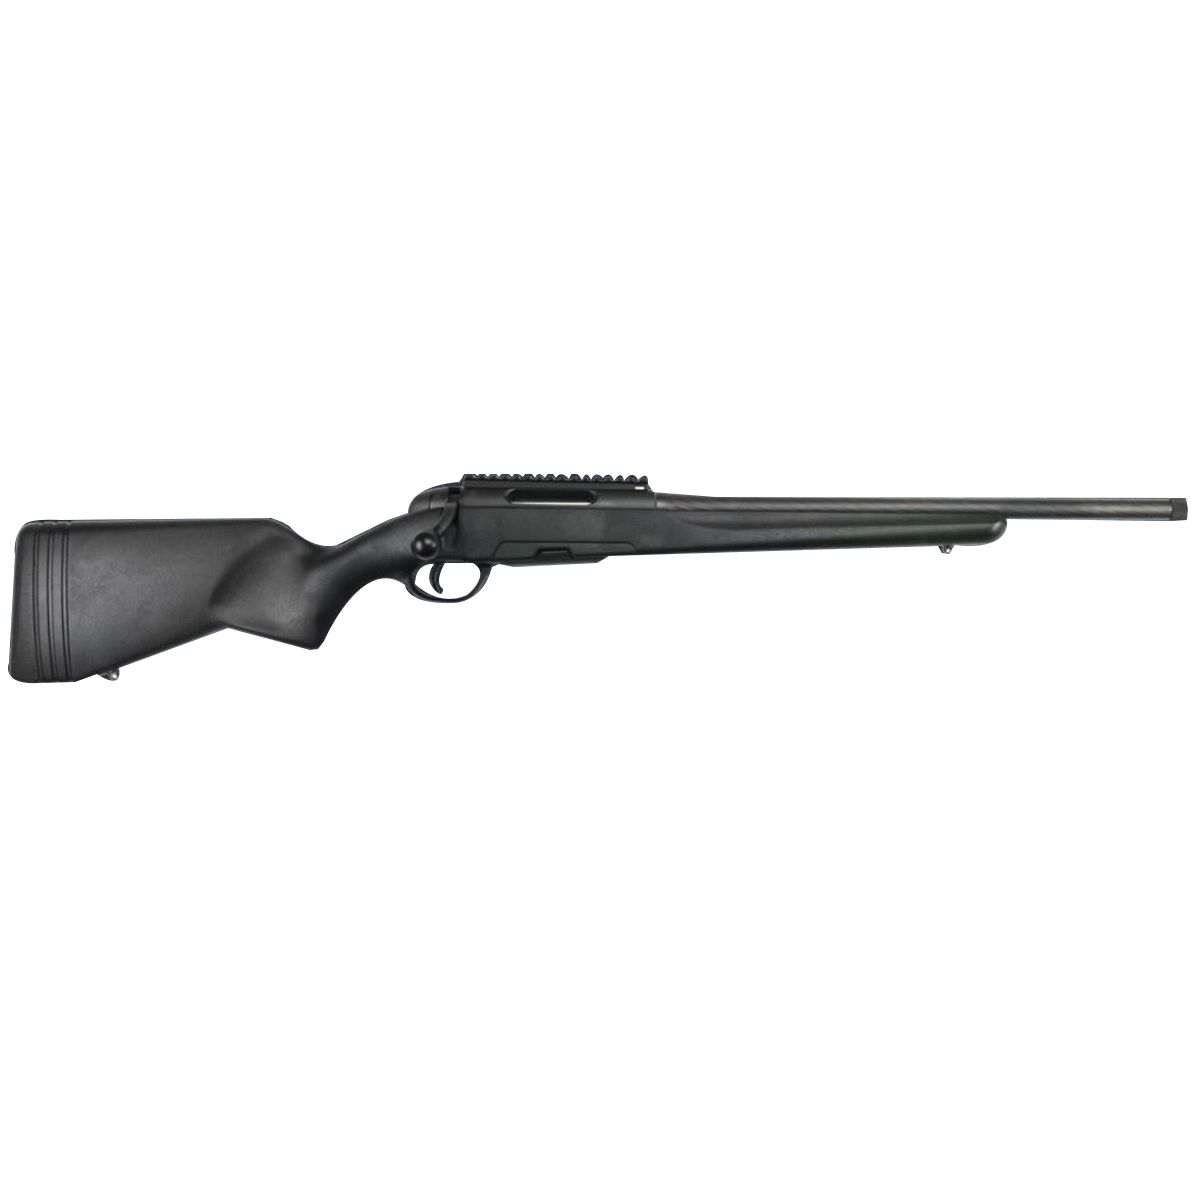 Steyr Arm Pro THB .308 Win Bolt Action Rifle, Blk - 56353G3G